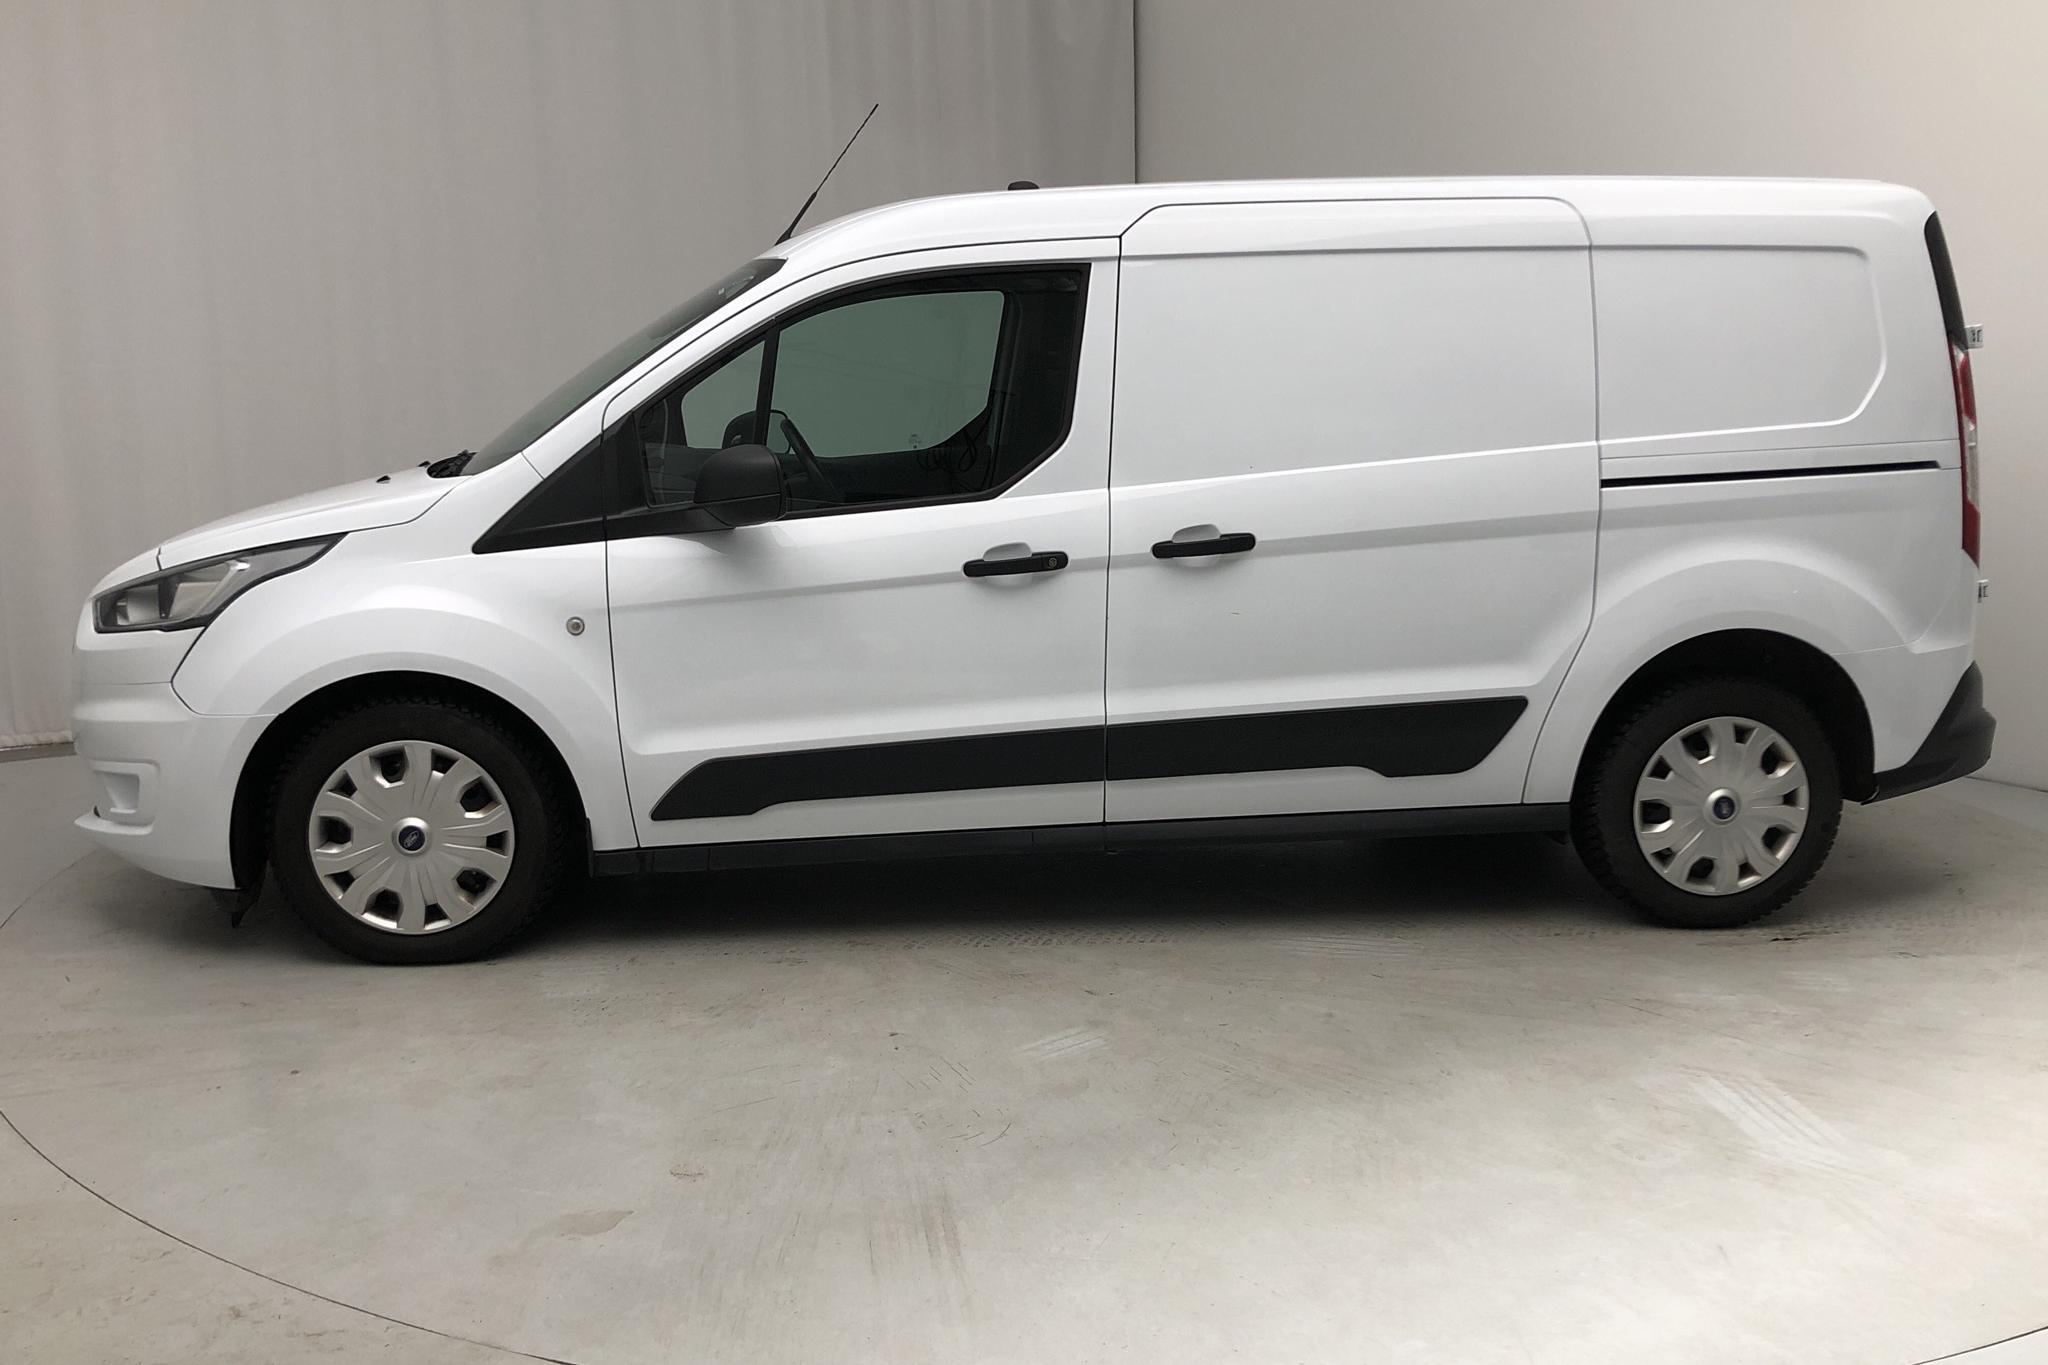 Ford Transit Connect 1.5 TDCi (100hk) - 0 km - Automatic - white - 2019